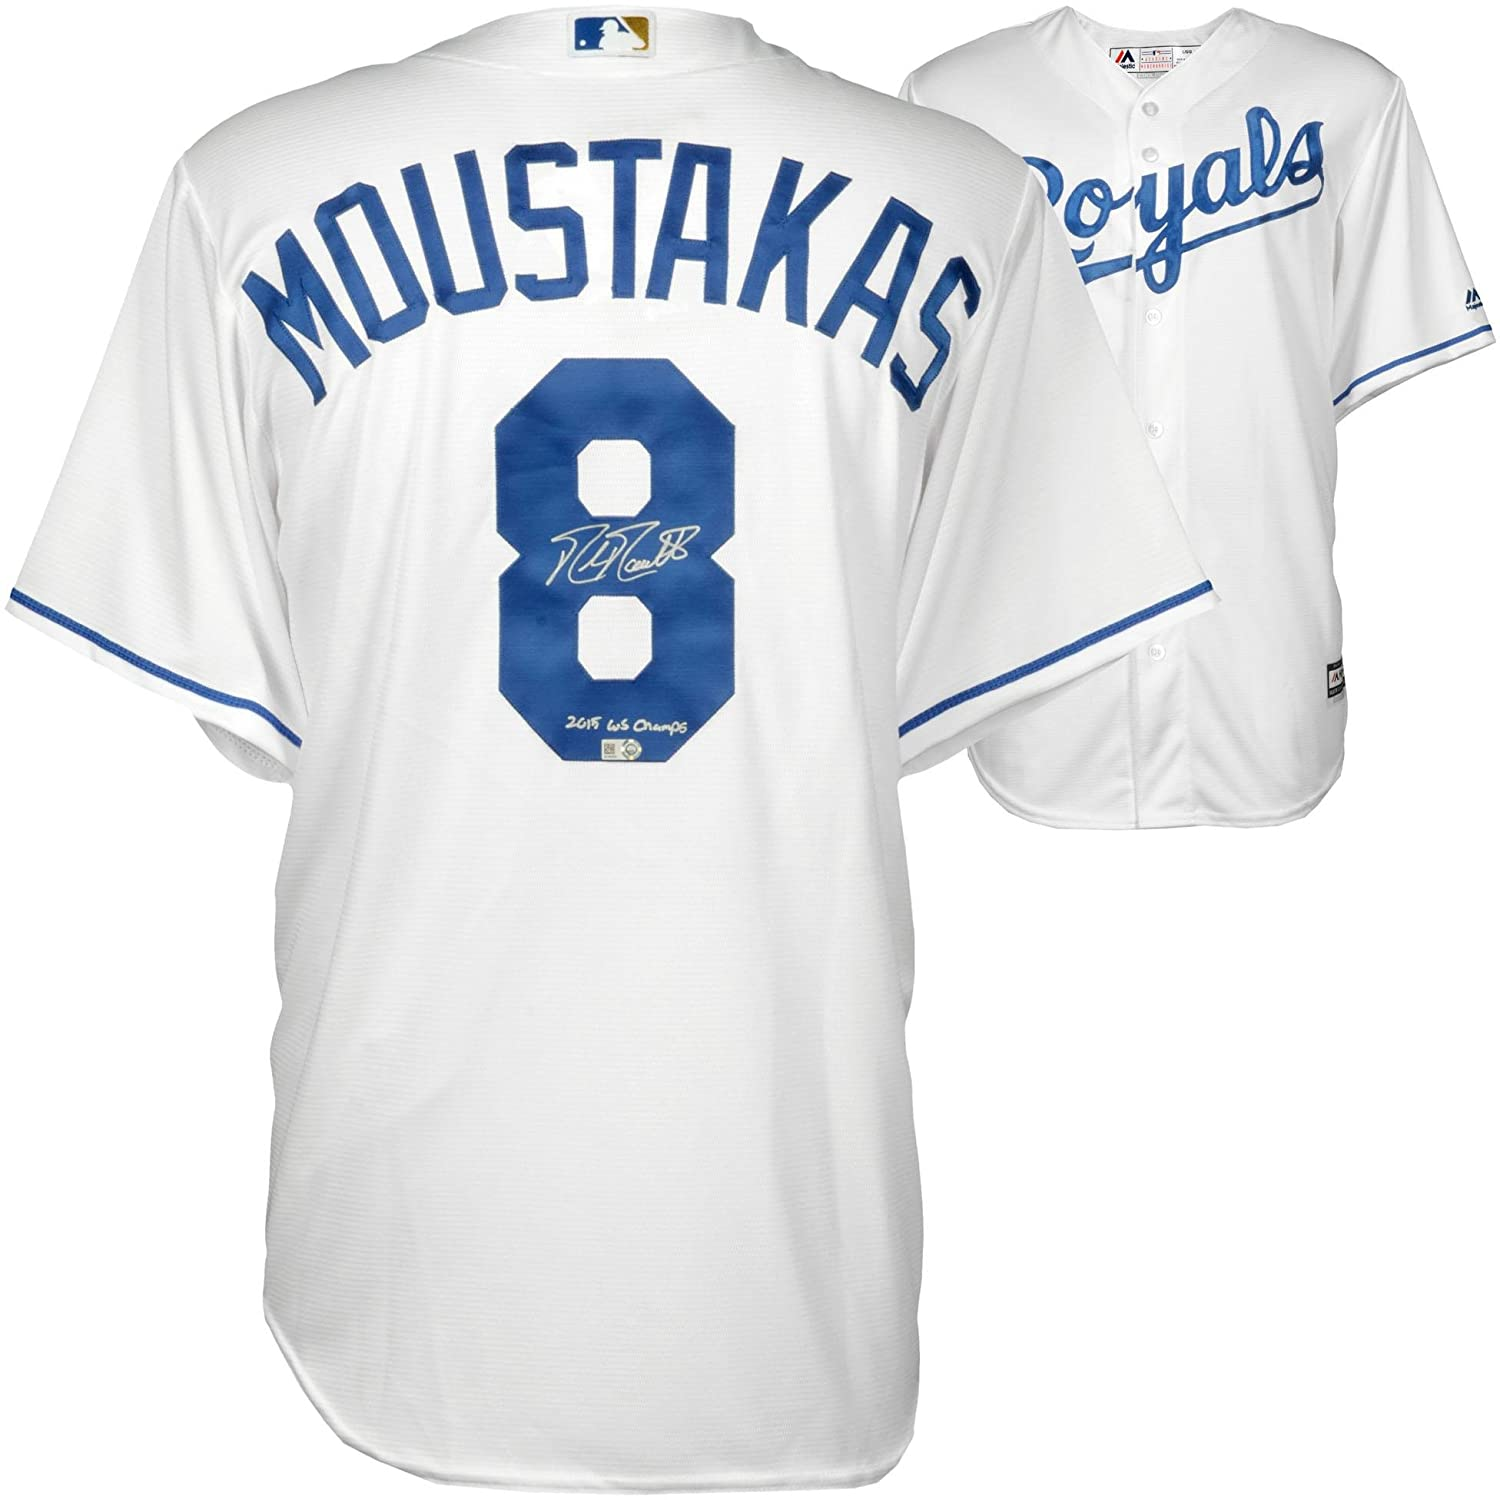 pretty nice dd40b 3d9e0 Mike Moustakas Kansas City Royals 2015 MLB World Series ...